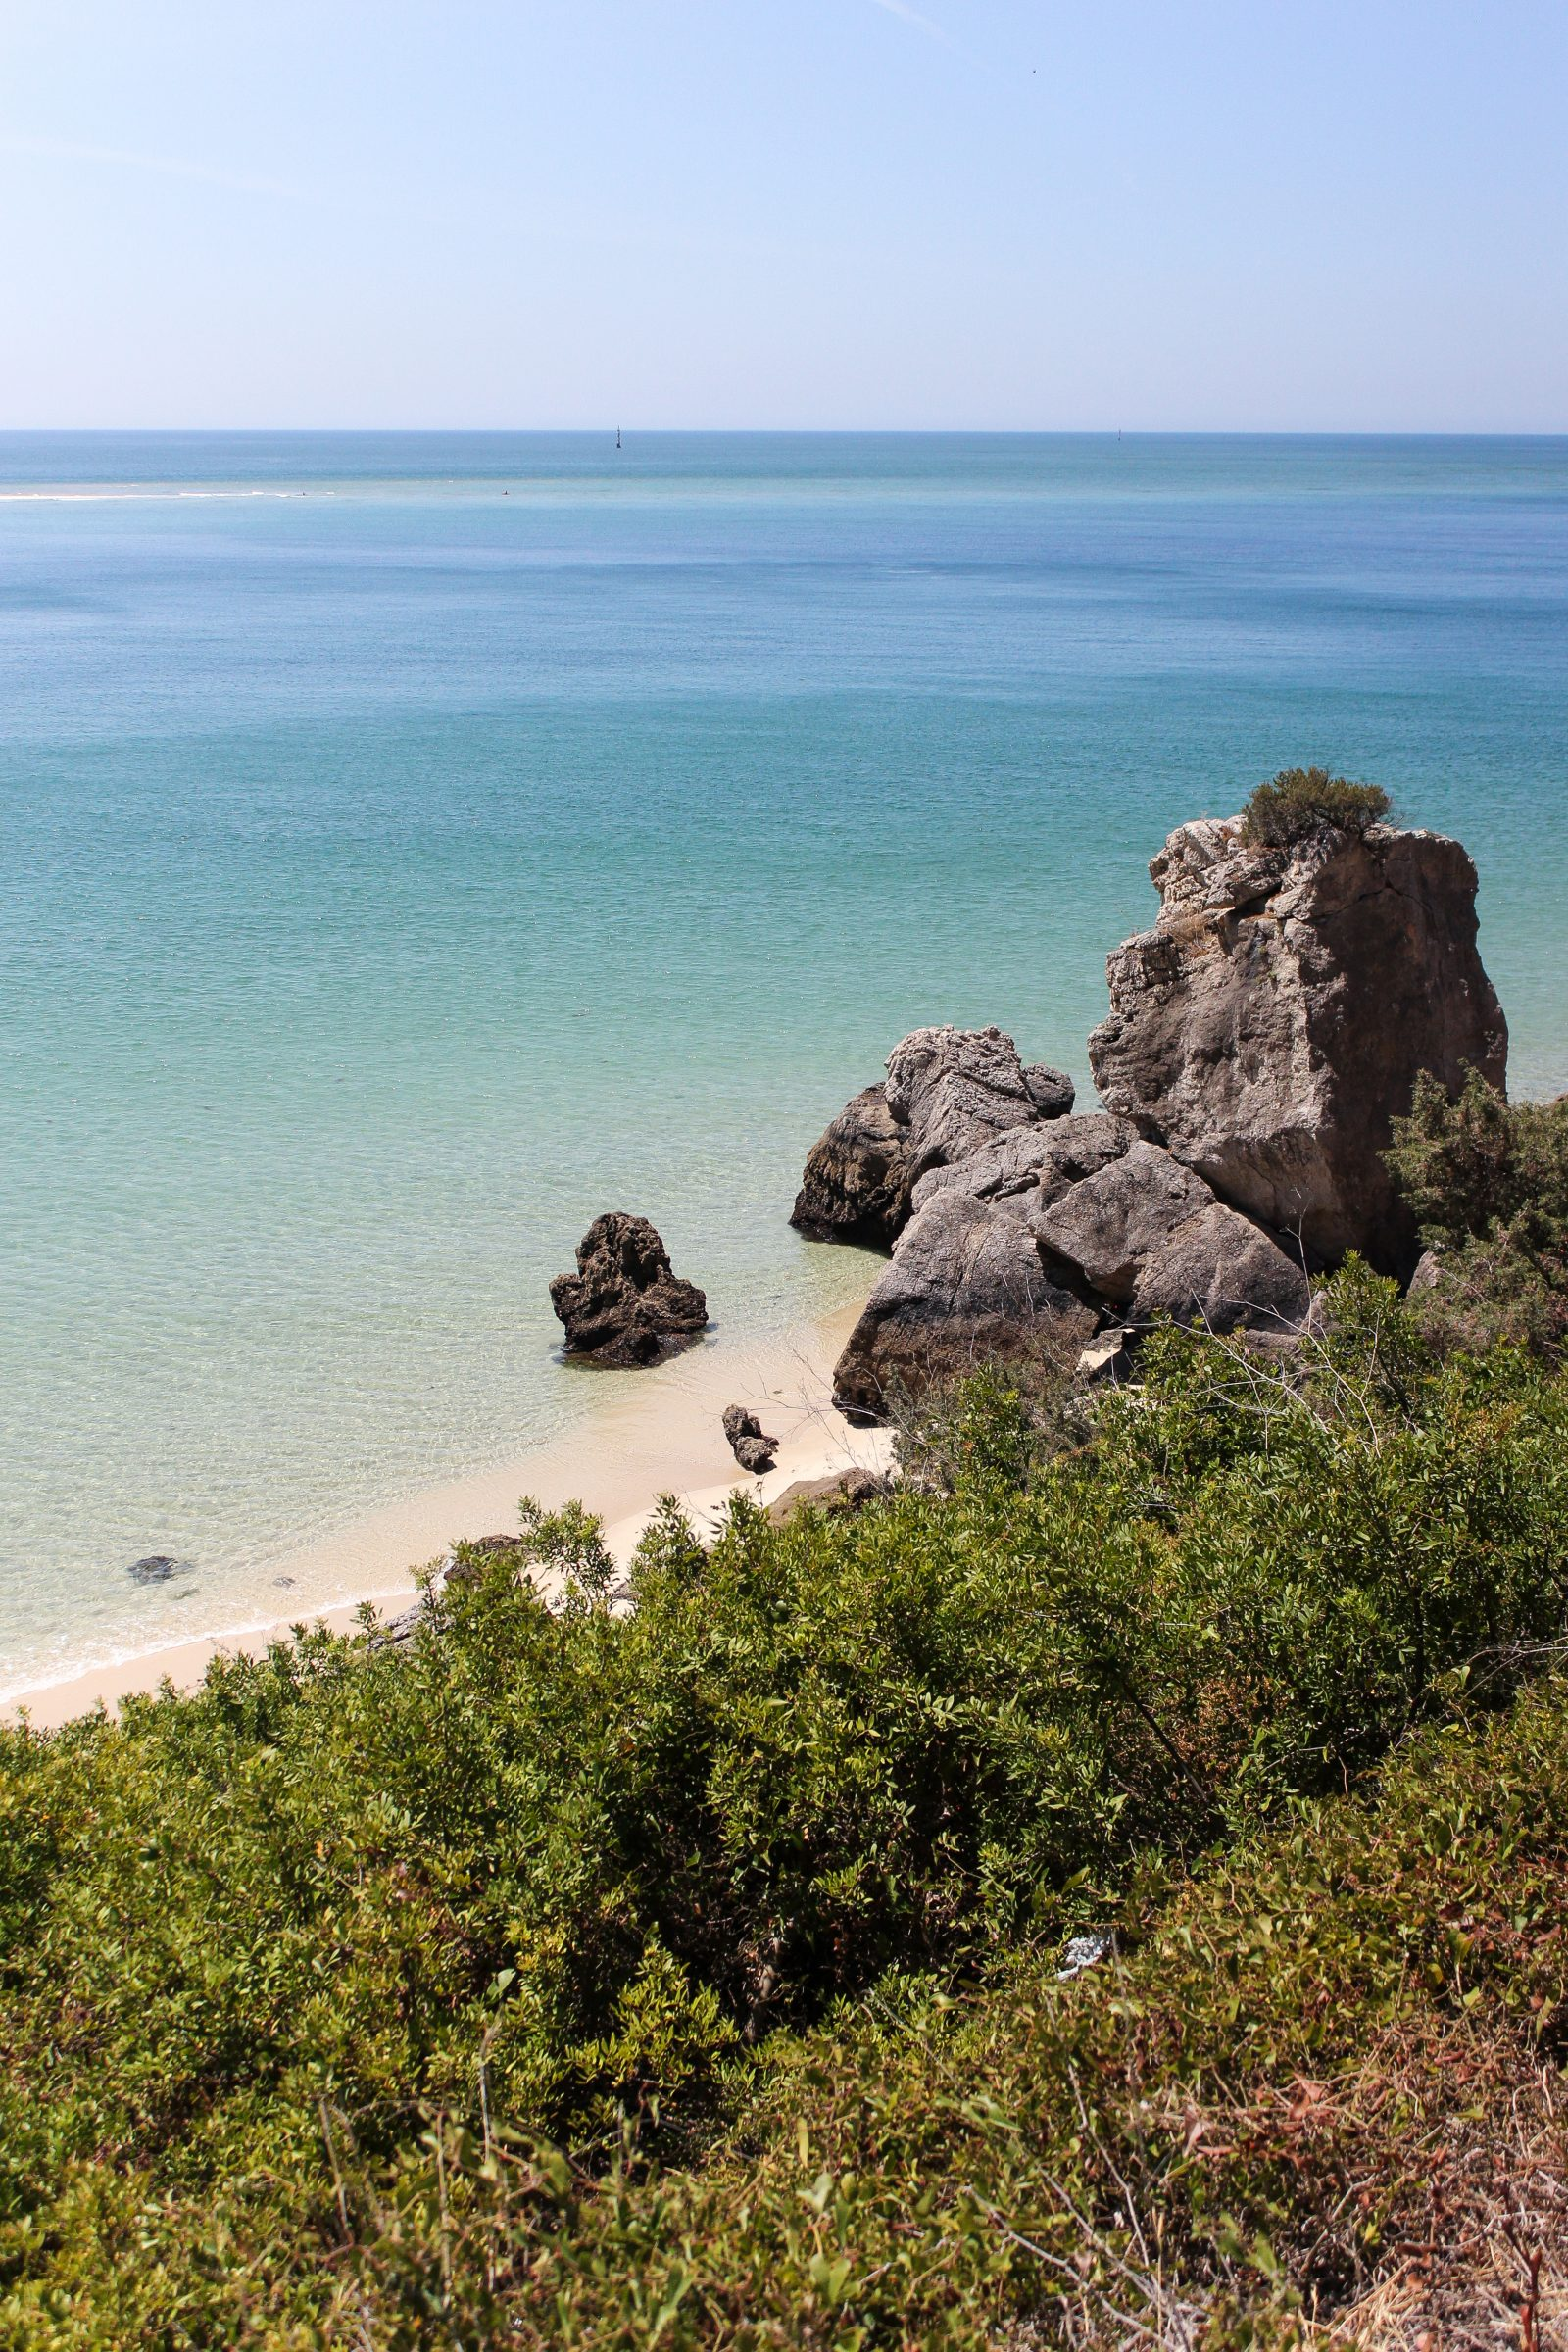 A viewpoint overlooking clear turqouise ocean water, green trees, and large rock formations in the Arrábida Natural Park